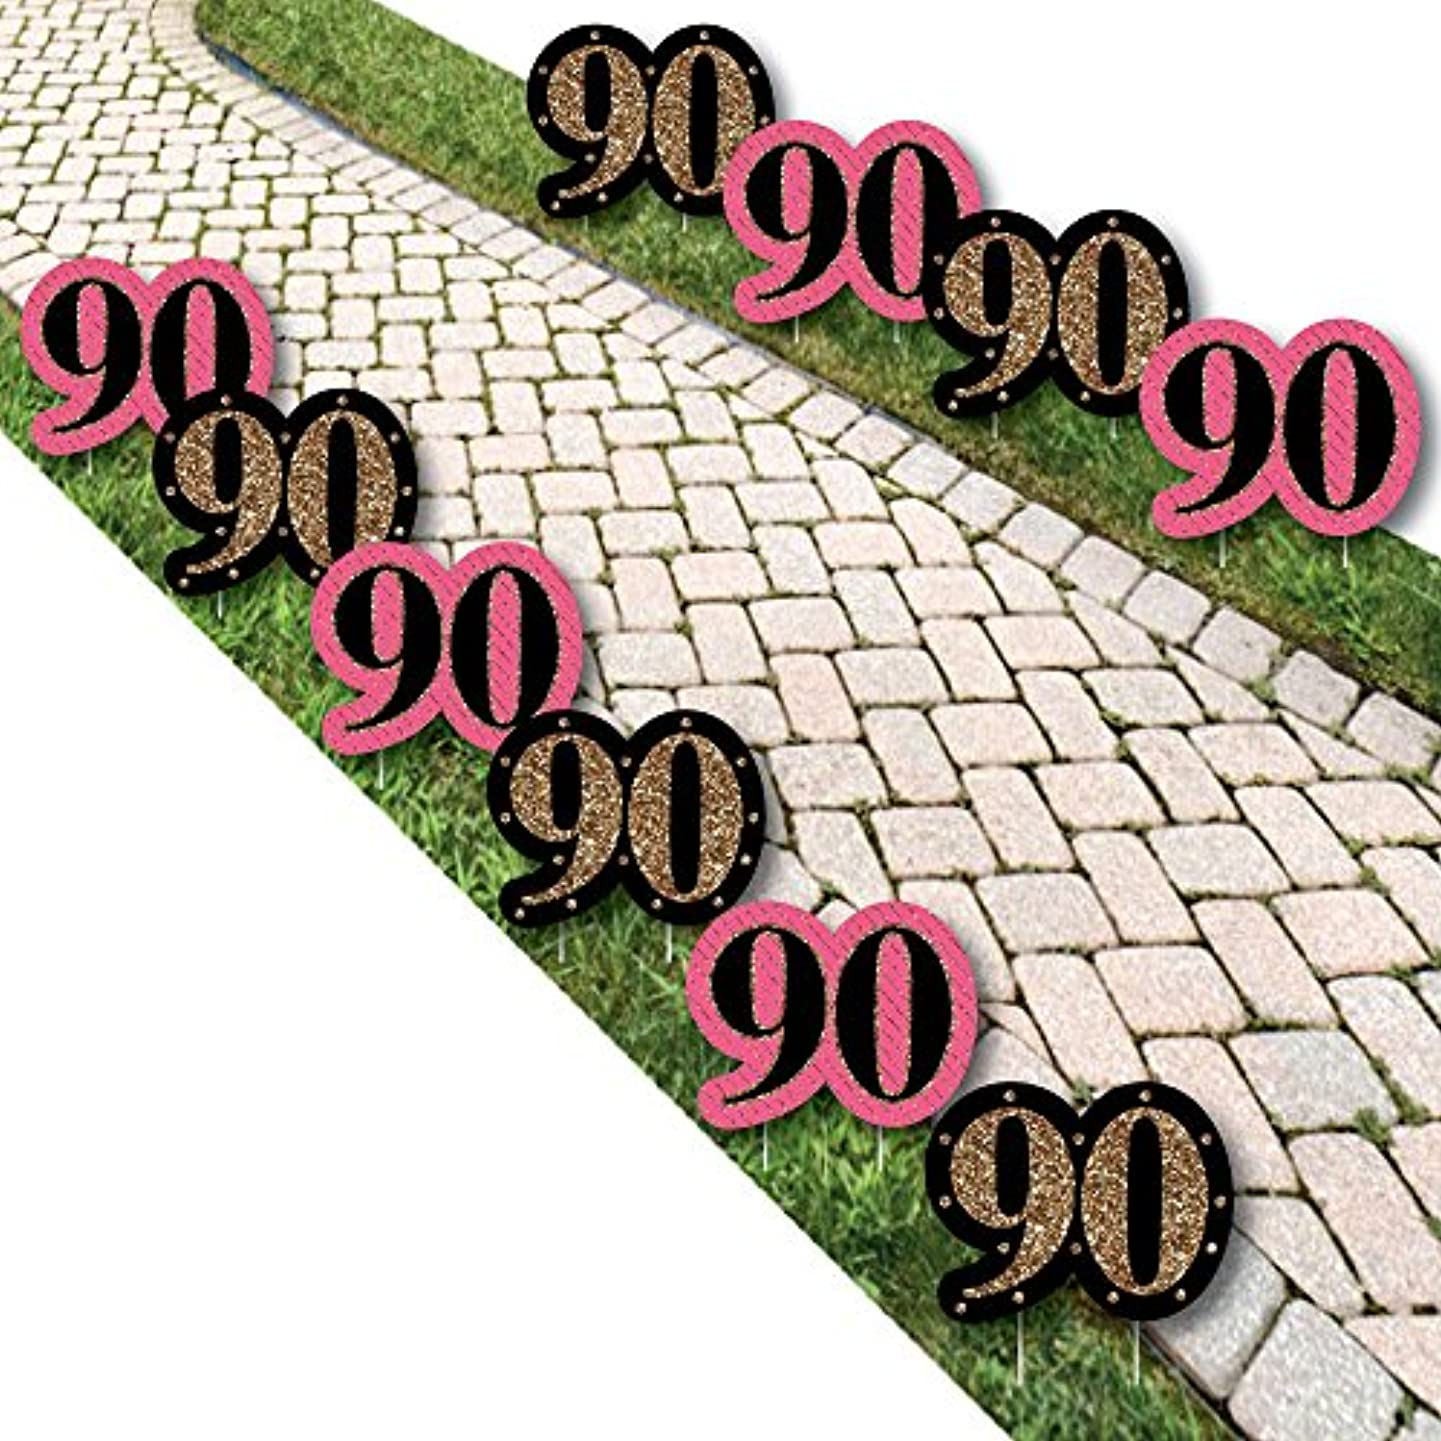 Chic 90th Birthday - Pink, Black and Gold Lawn Decorations - Outdoor Birthday Party Yard Decorations - 10 Piece